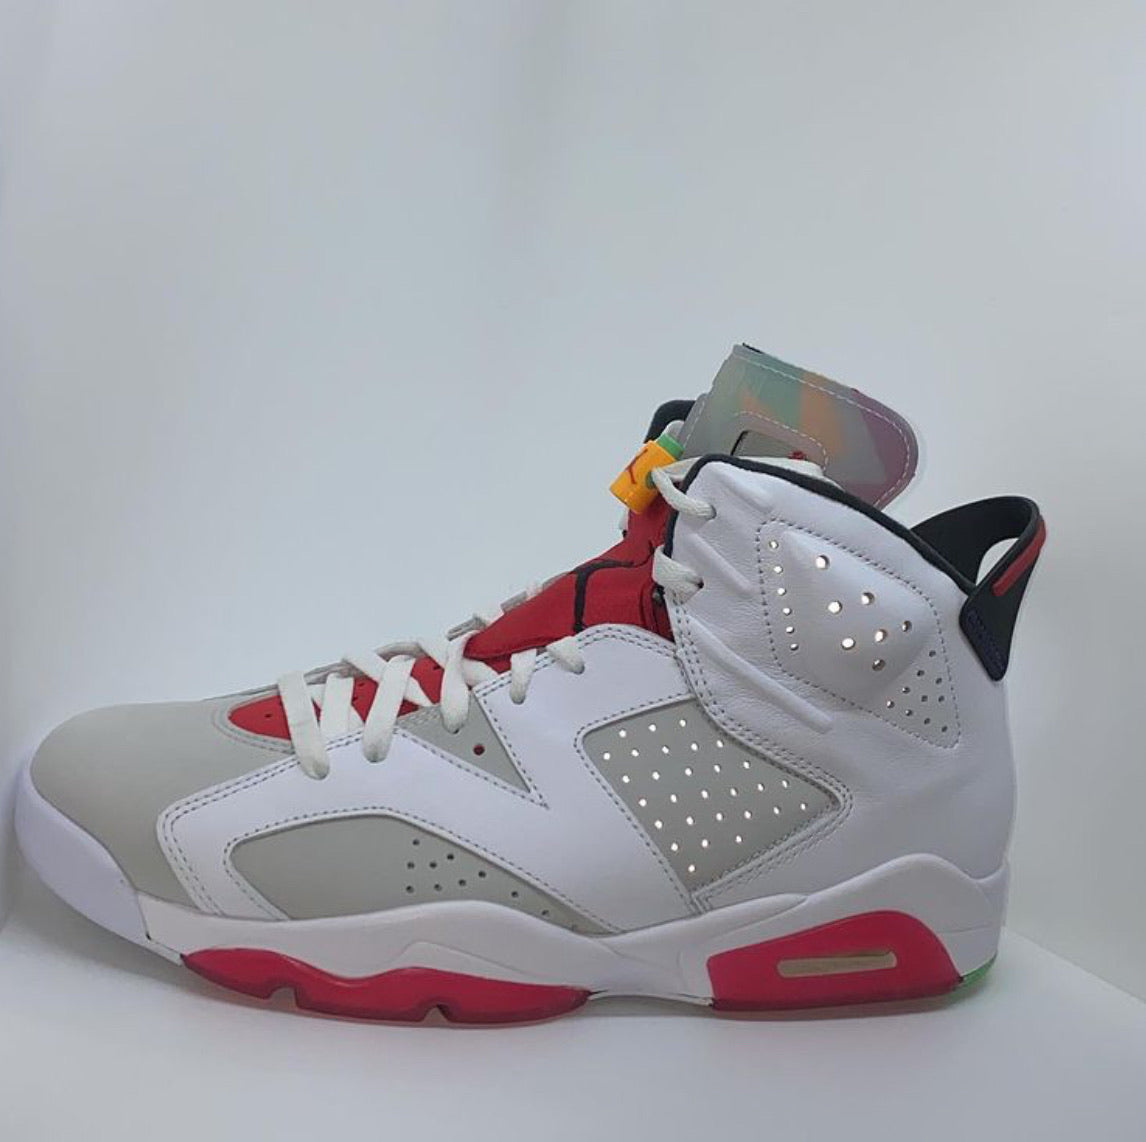 Air Jordan Retro 6s Hare